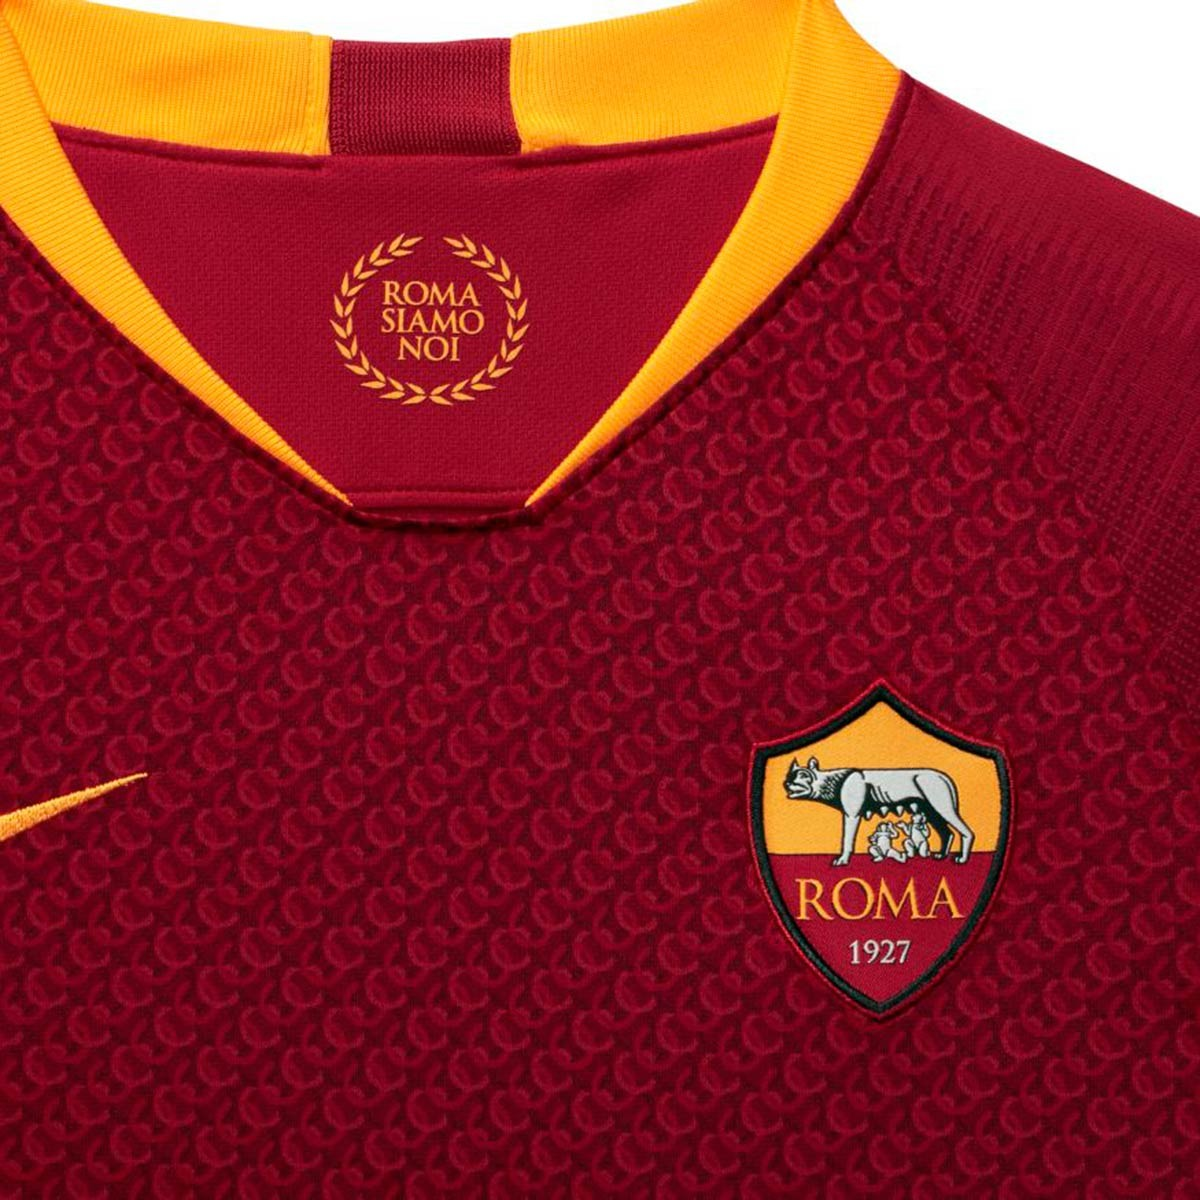 96eb689fa0b93 Camiseta Nike AS Roma Stadium Primera Equipación 2018-2019 Niño Team  red-University gold - Tienda de fútbol Fútbol Emotion